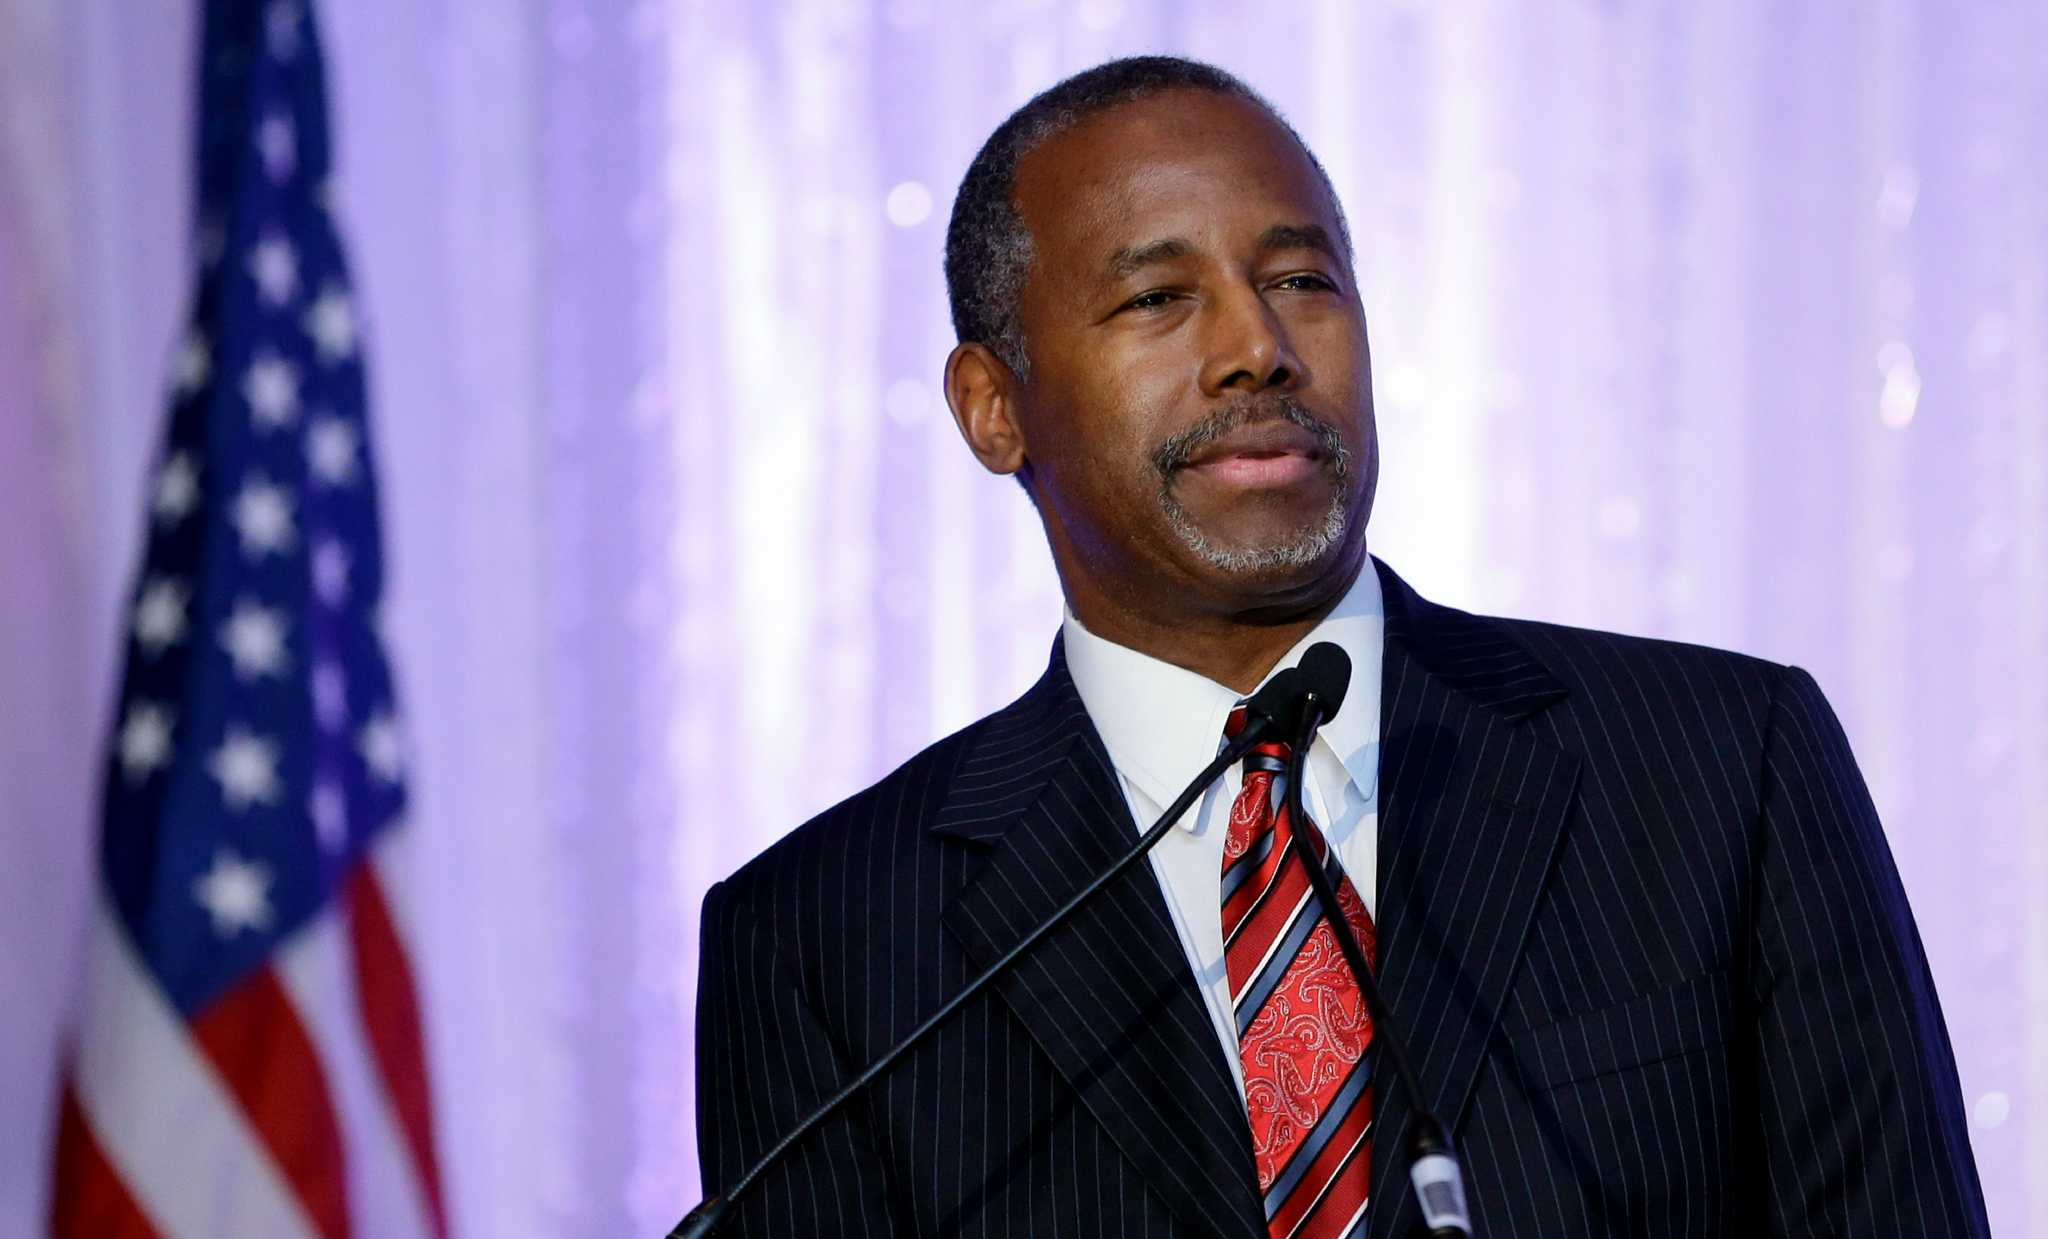 What's happening to Ben Carson? - HoustonChronicle.com